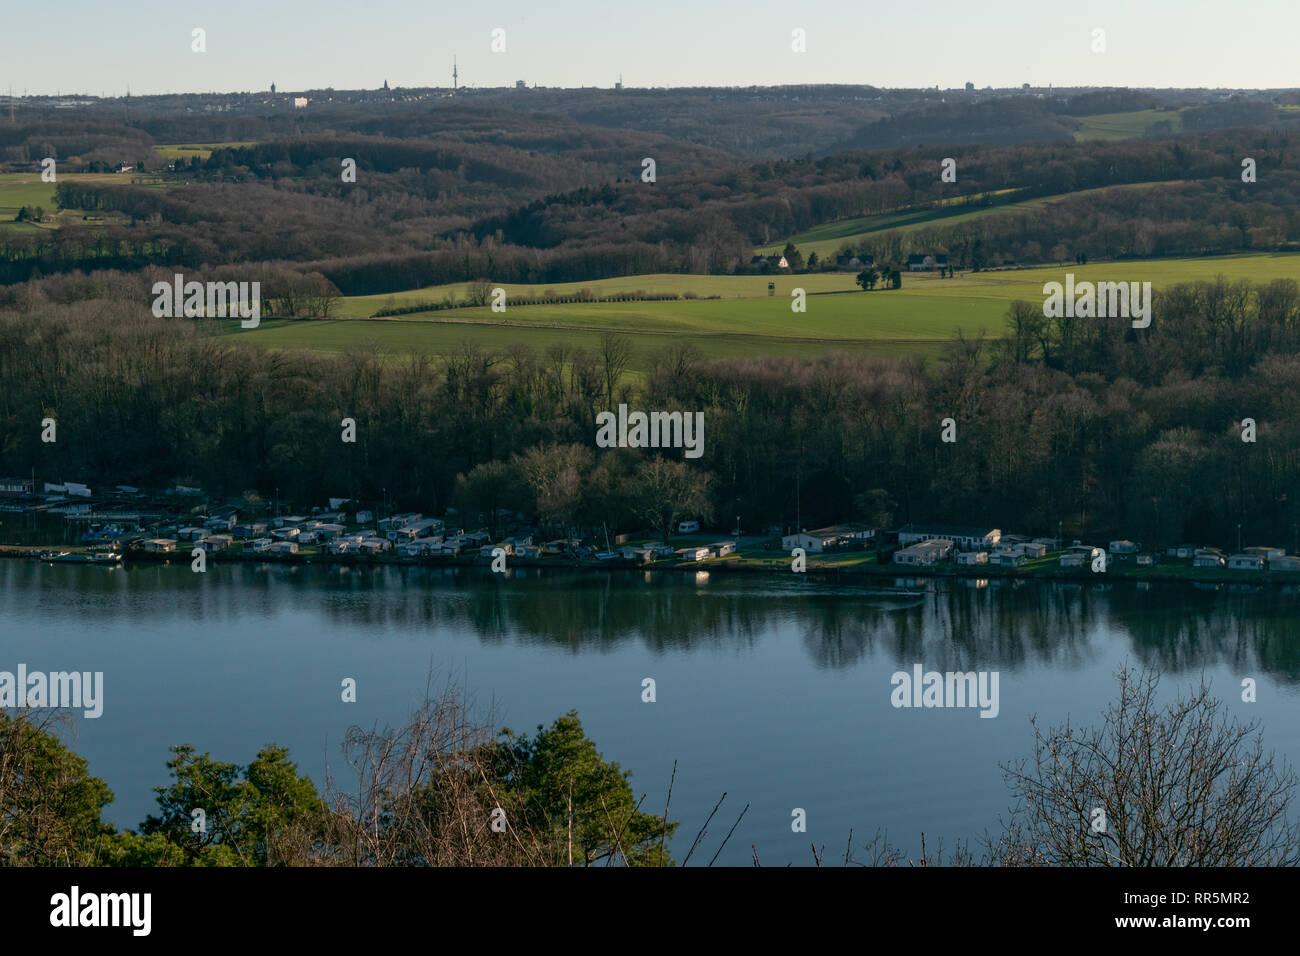 View over Ruhr river of large forest and farm lands in Germany - Stock Image